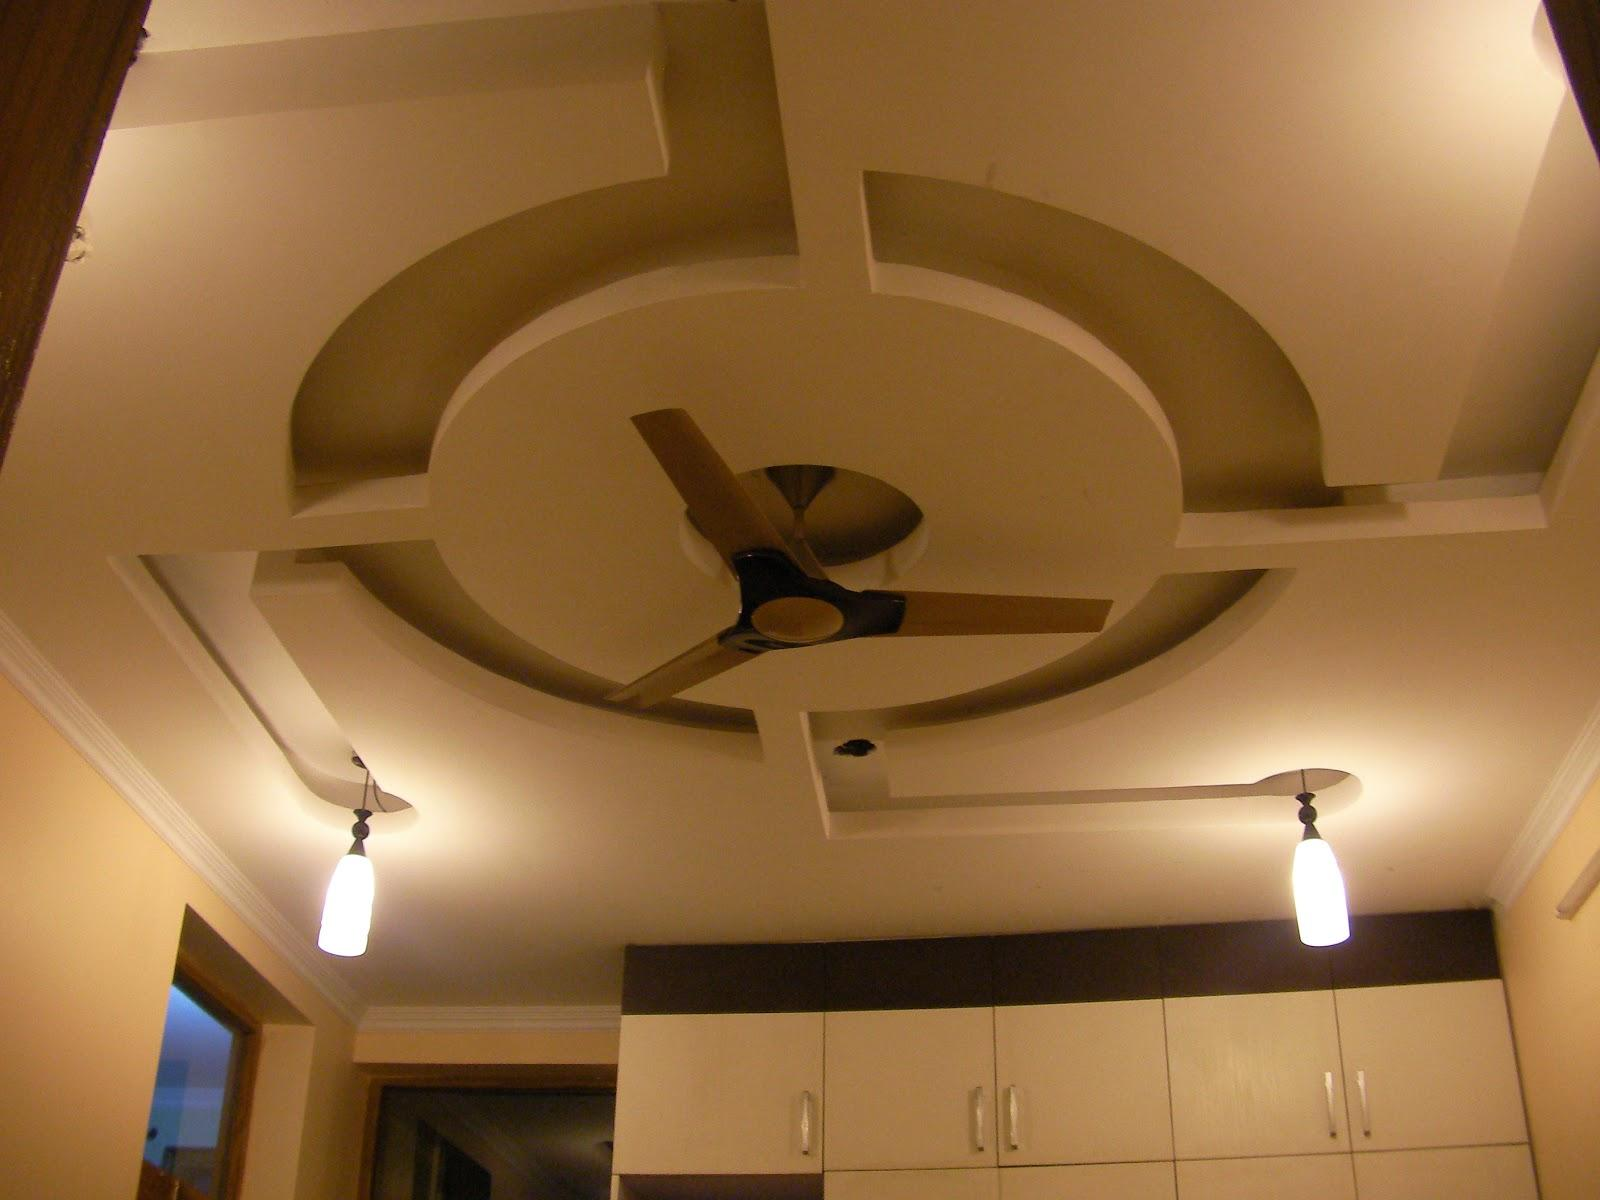 P o p ceiling design with a round design in the center for P o p indian home designs